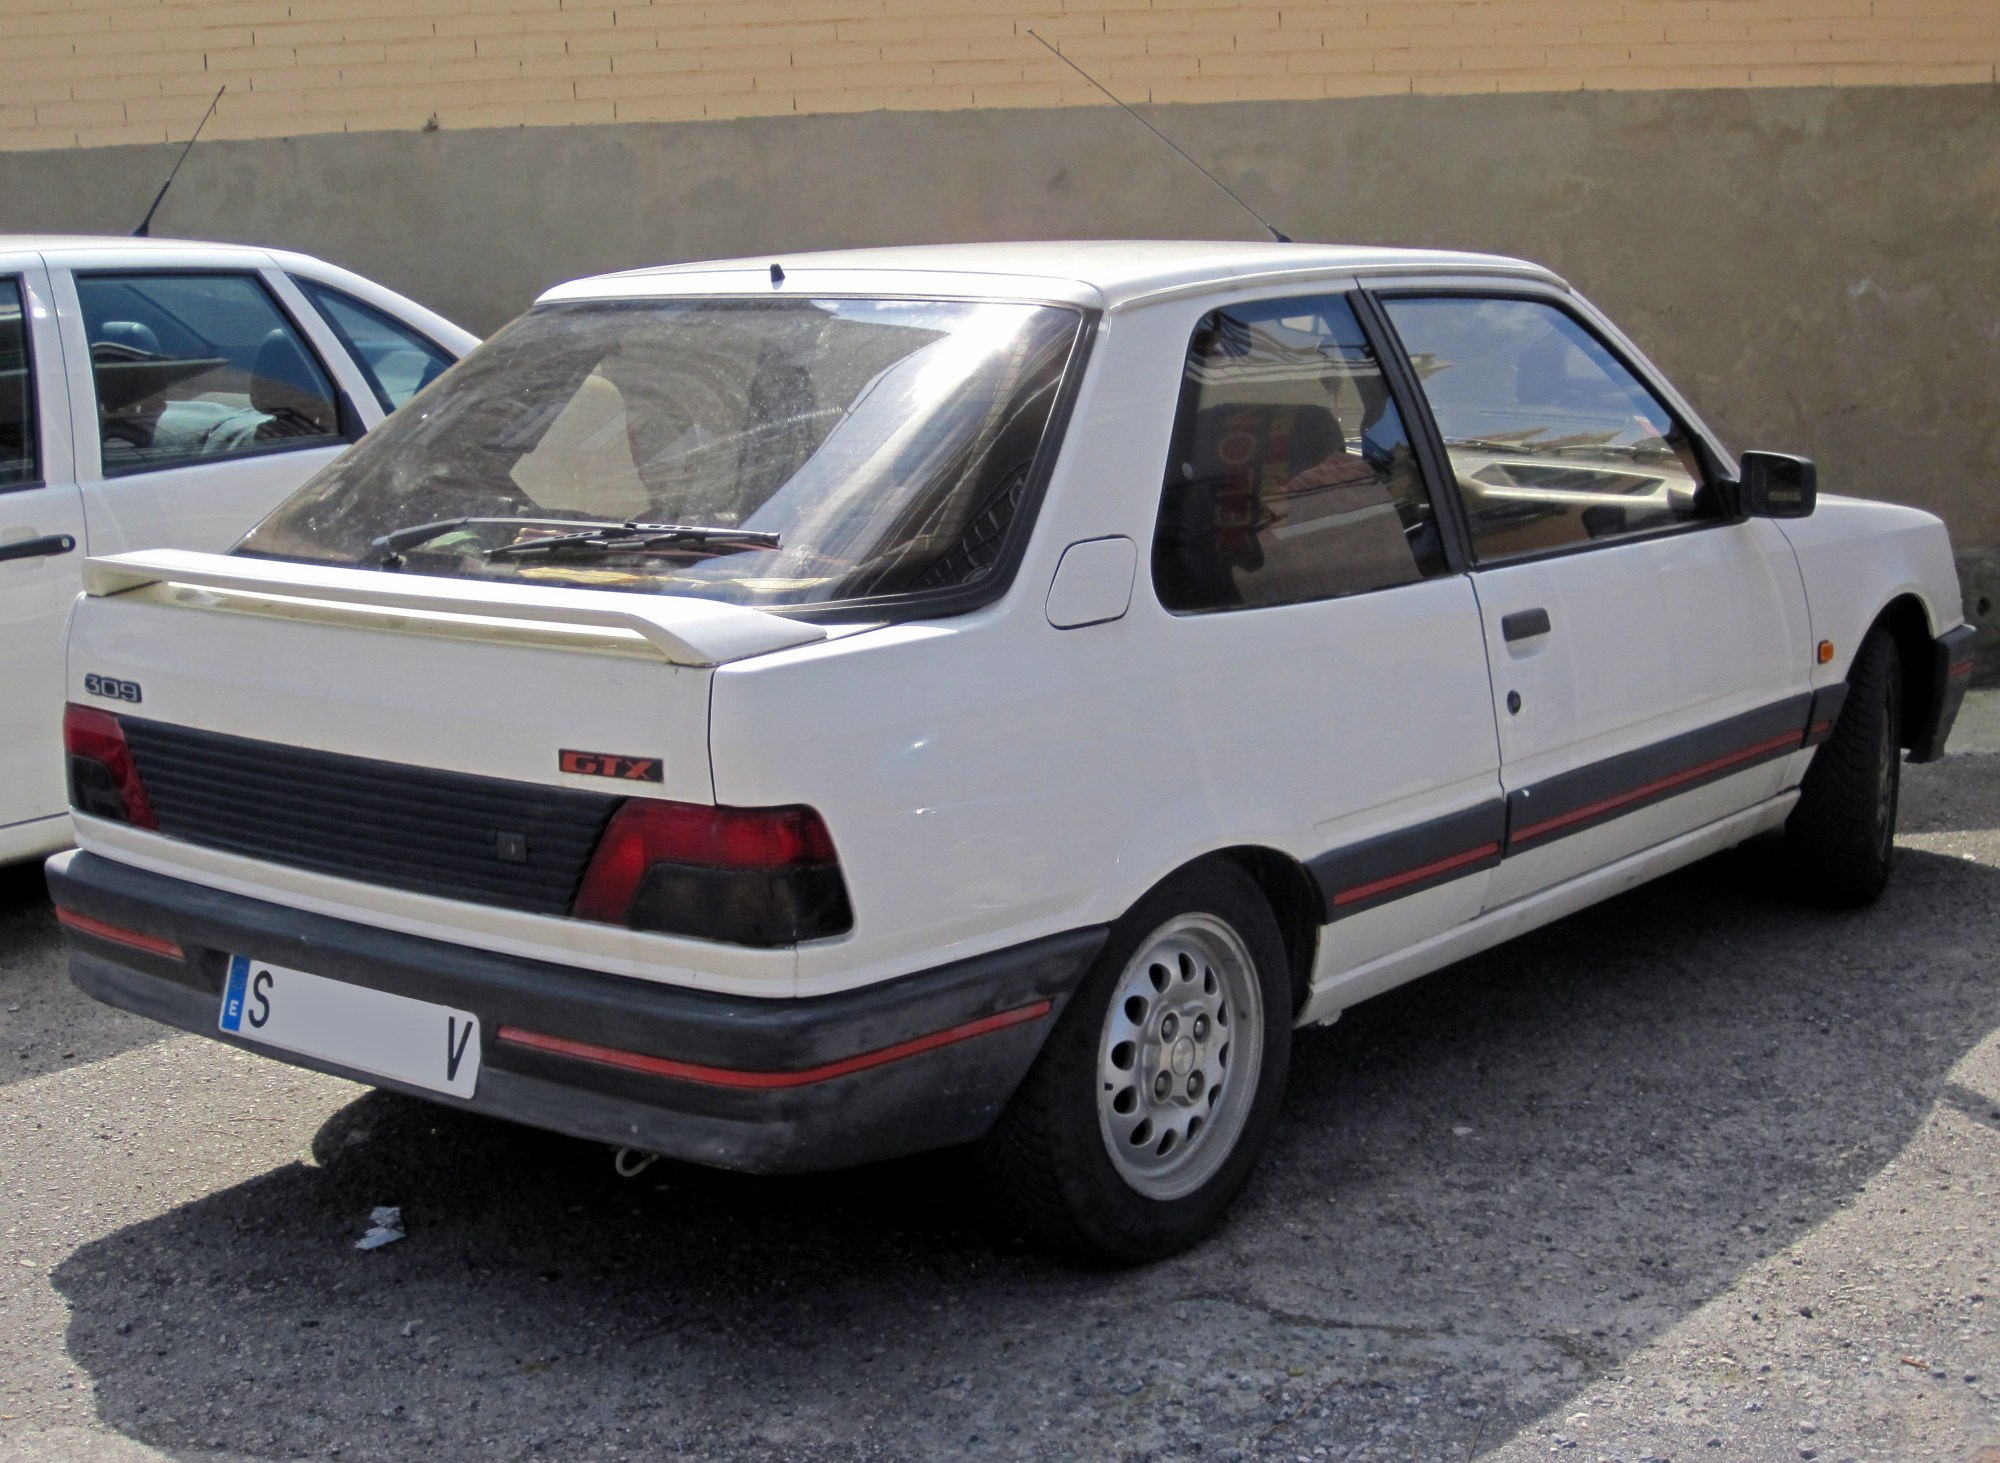 hight resolution of 1989 peugeot 309 gtx a model specific to spain